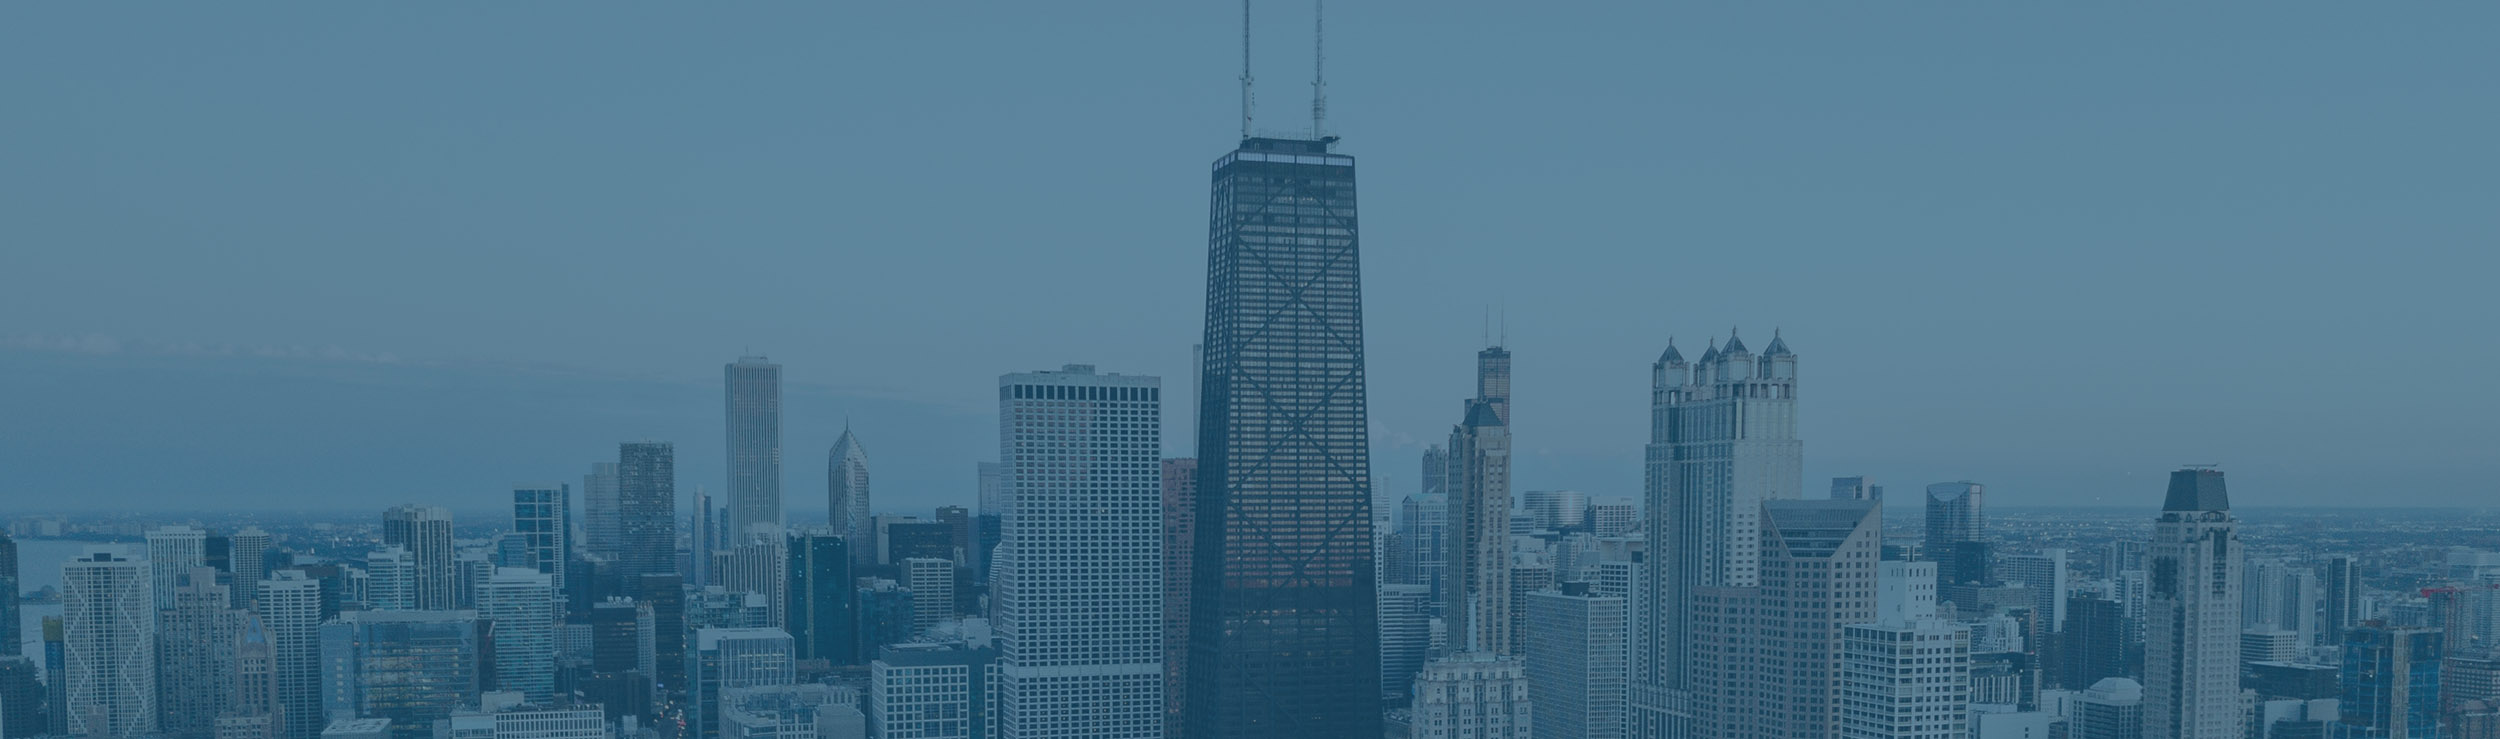 CyberSecurity Summit: Chicago